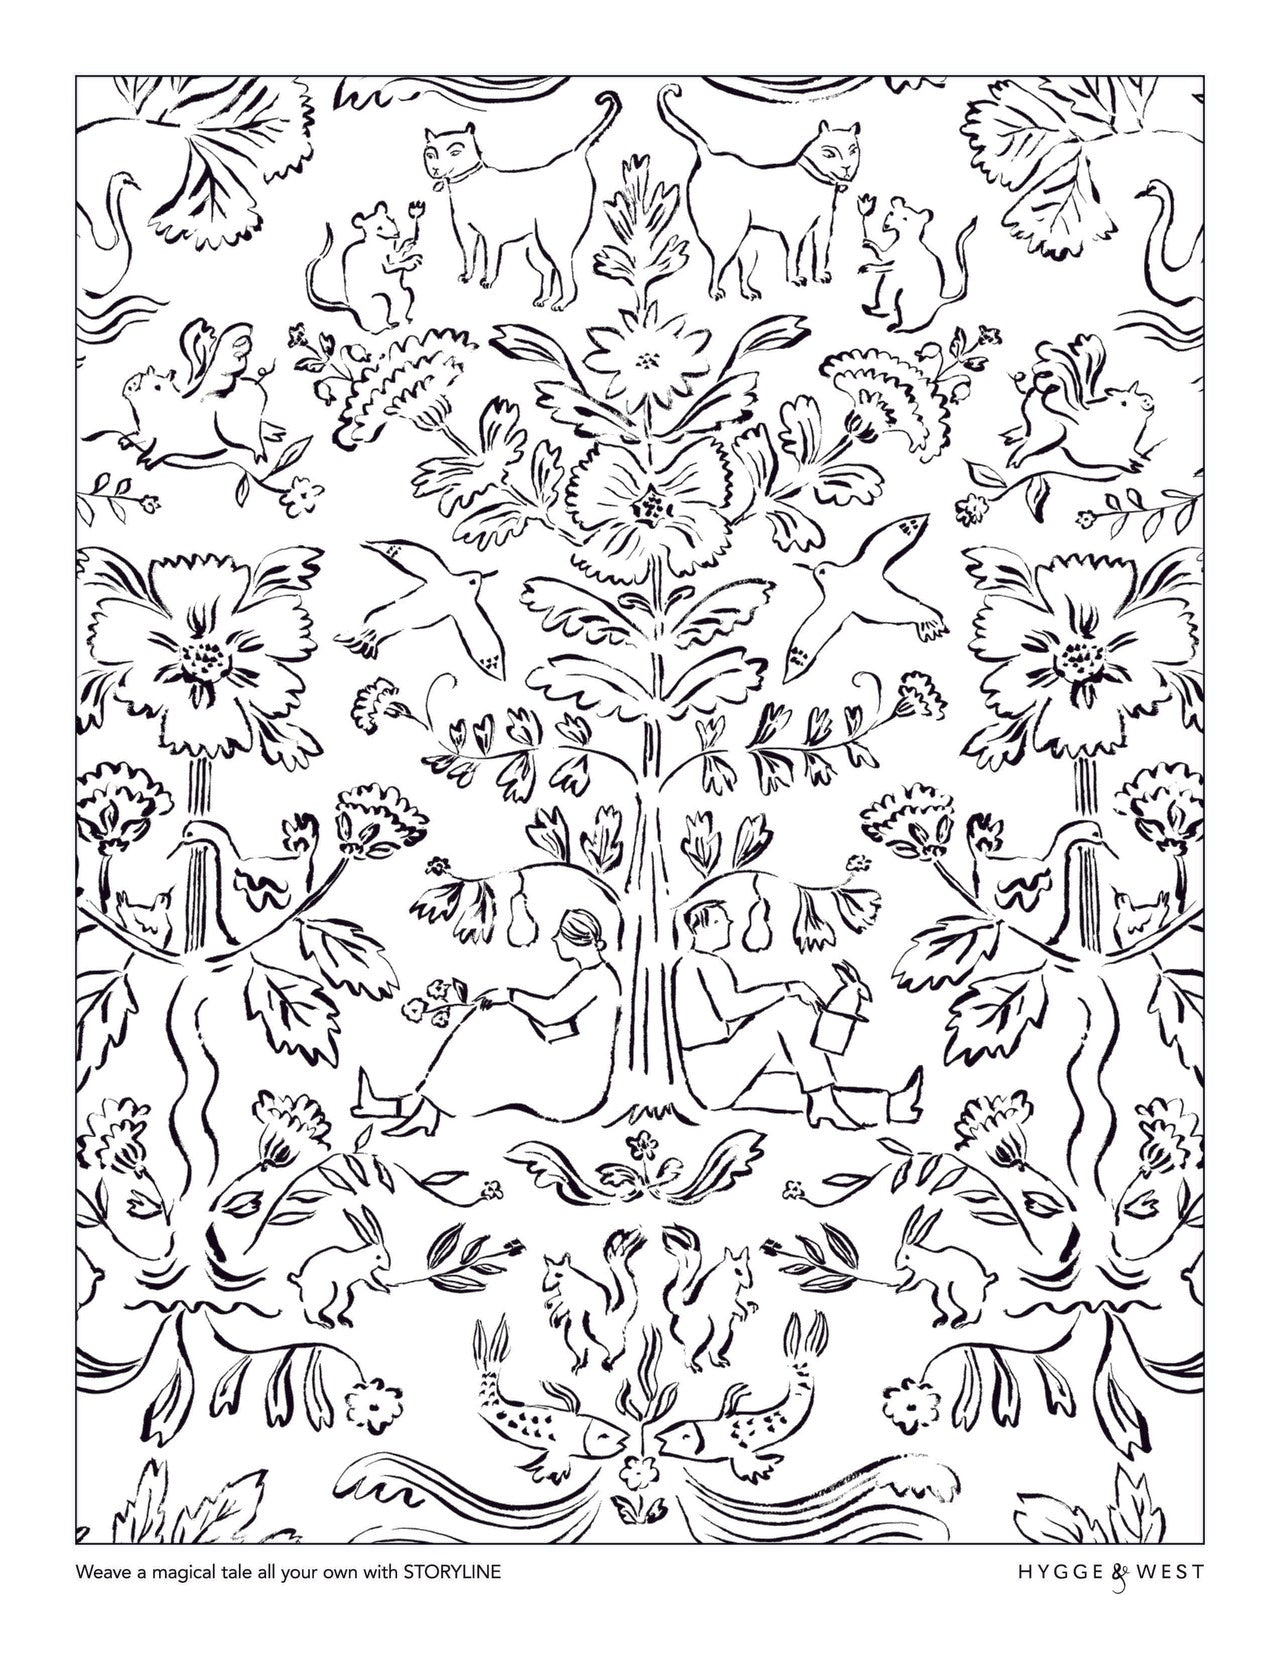 Storyline pattern coloring page | Emily Isabella | modern wallpaper | Hygge & West